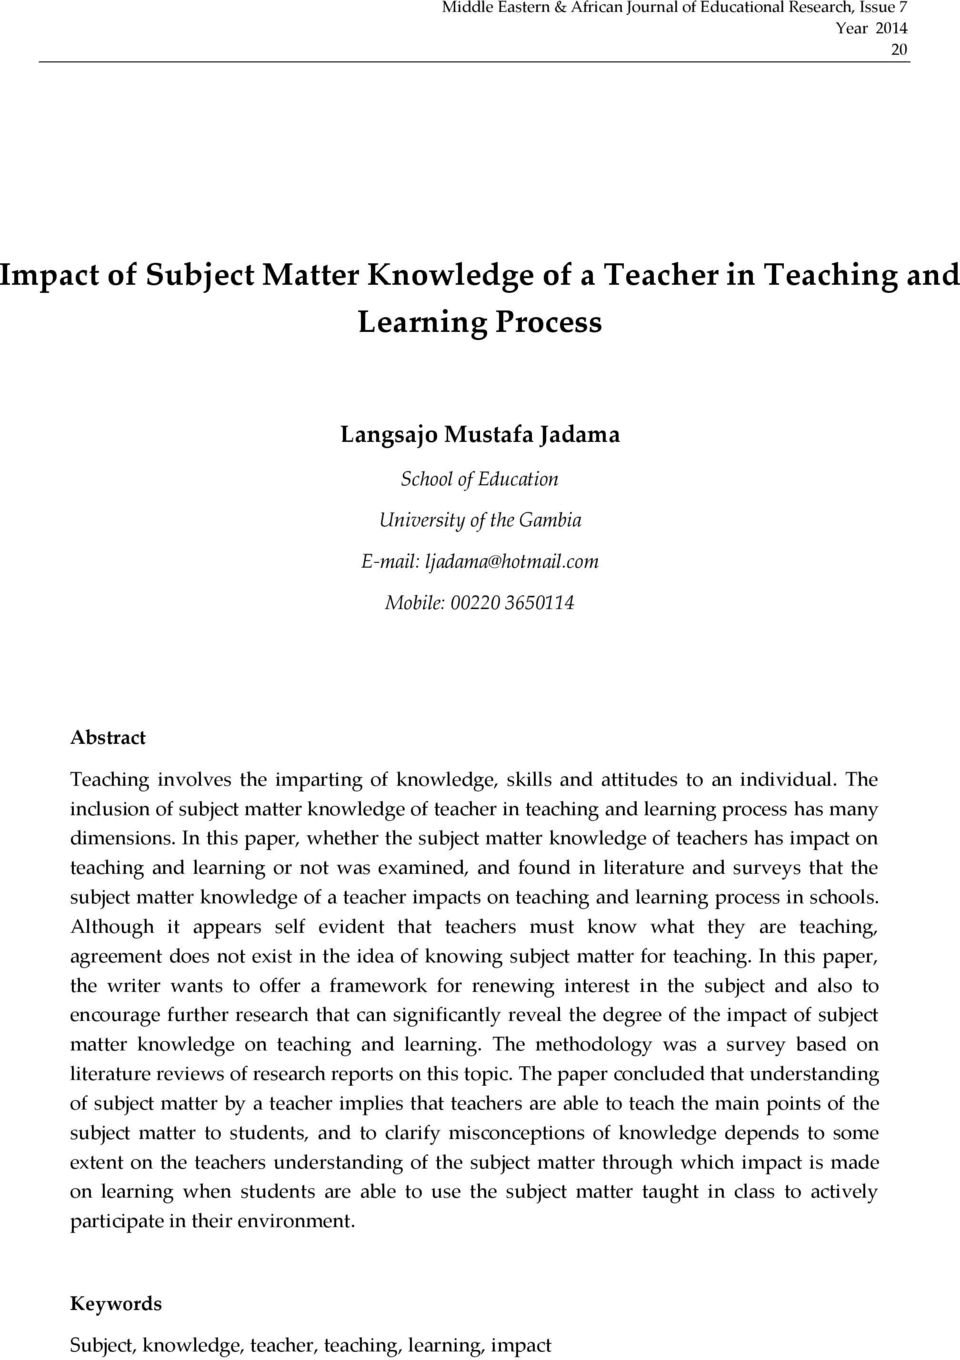 The inclusion of subject matter knowledge of teacher in teaching and learning process has many dimensions.